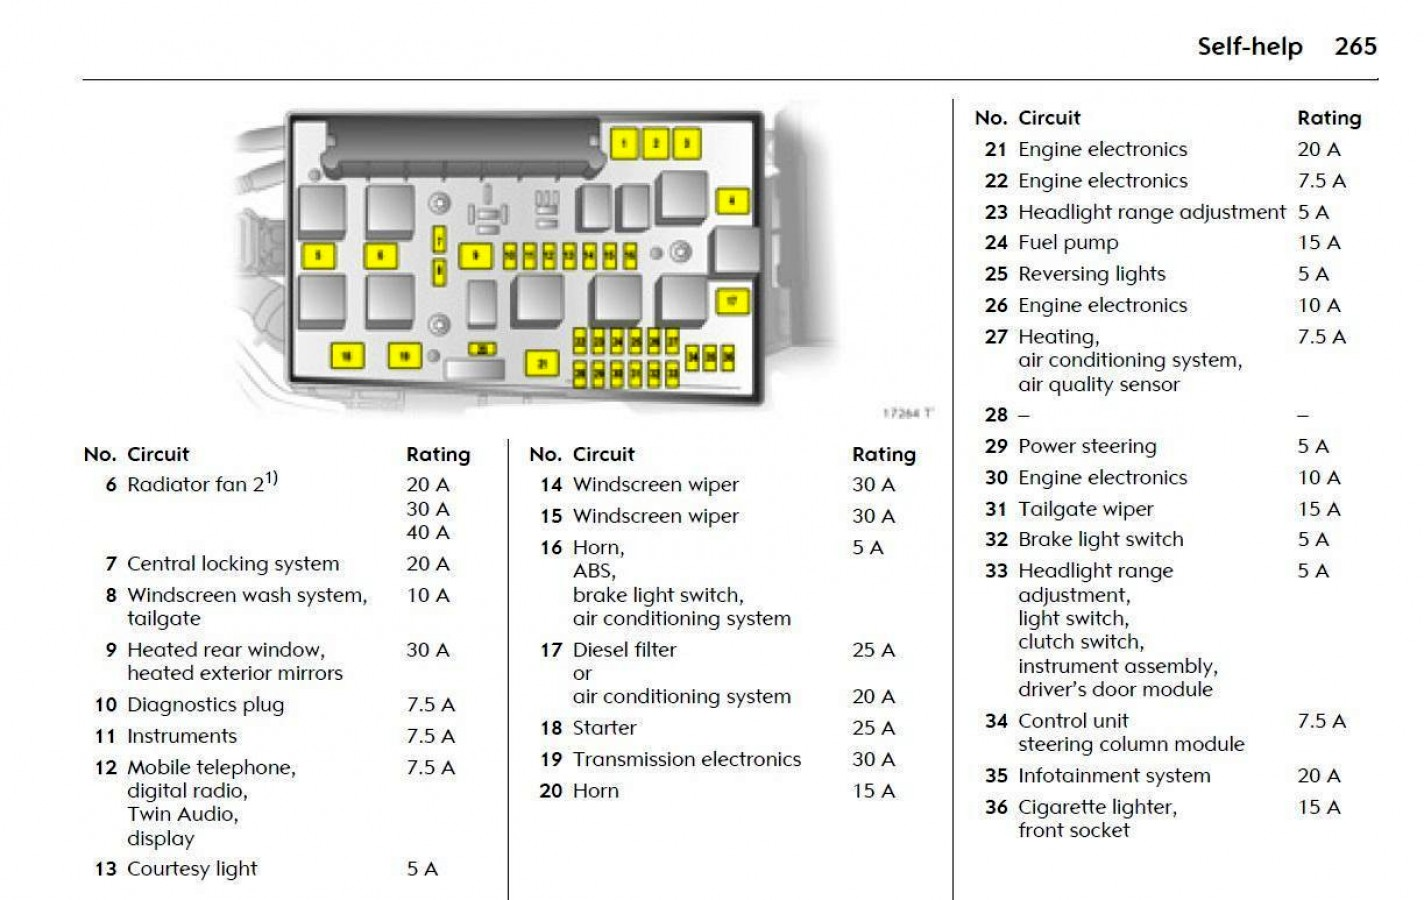 opel corsa c fuse box guide | scatter-licenses wiring diagram snapshot -  scatter-licenses.palmamobili.it  palmamobili.it